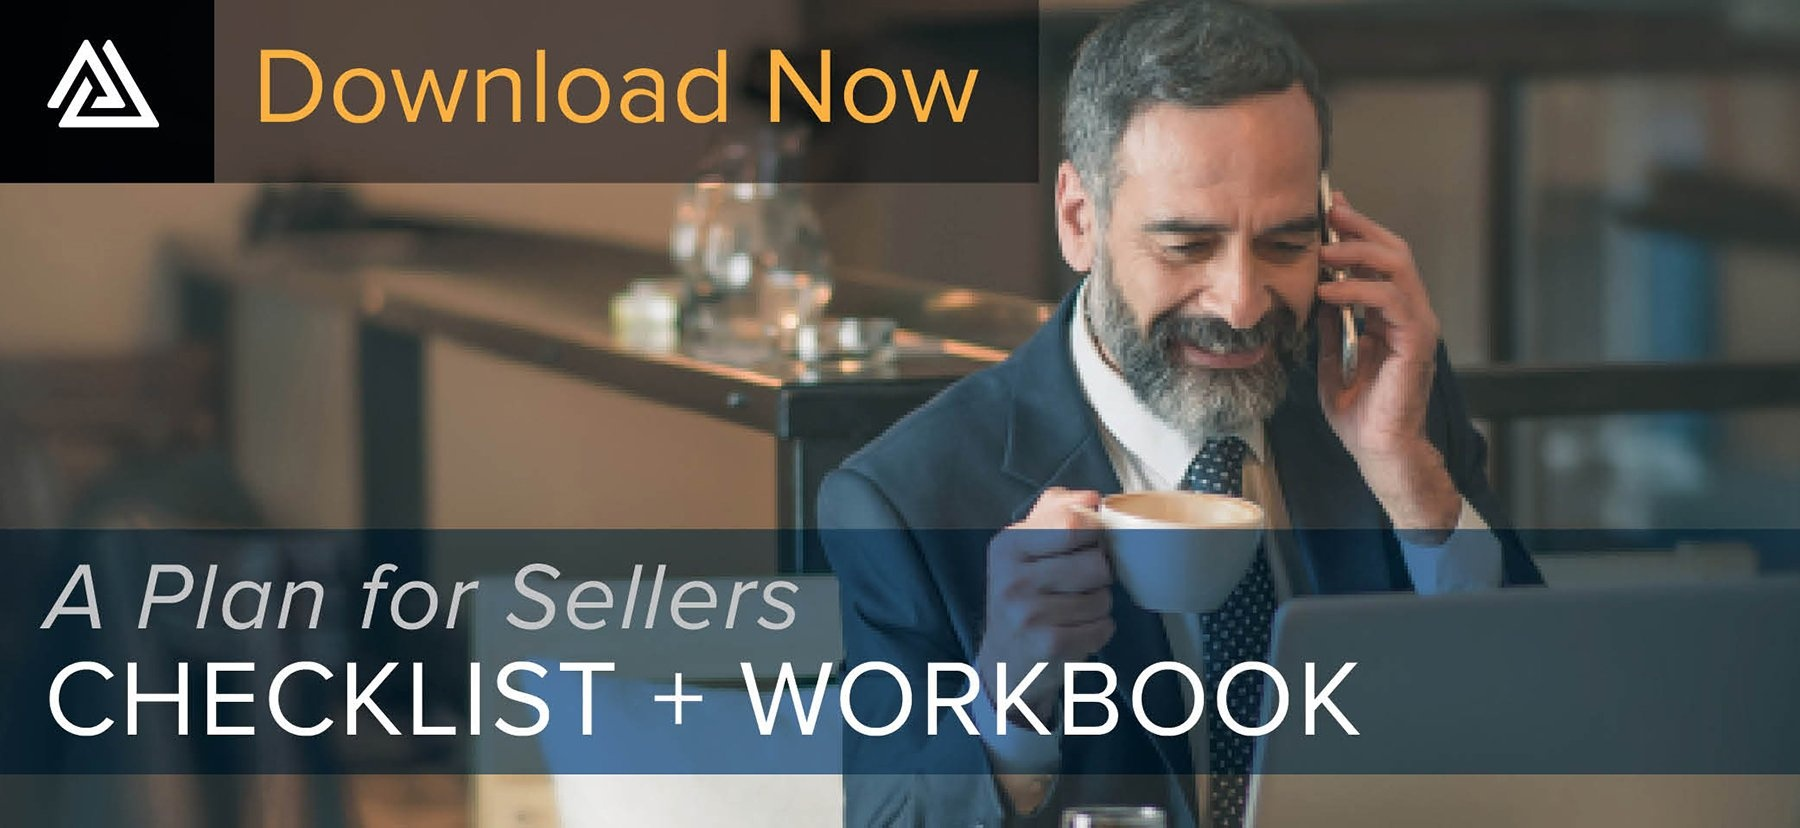 Plan for Sellers Workbook Download